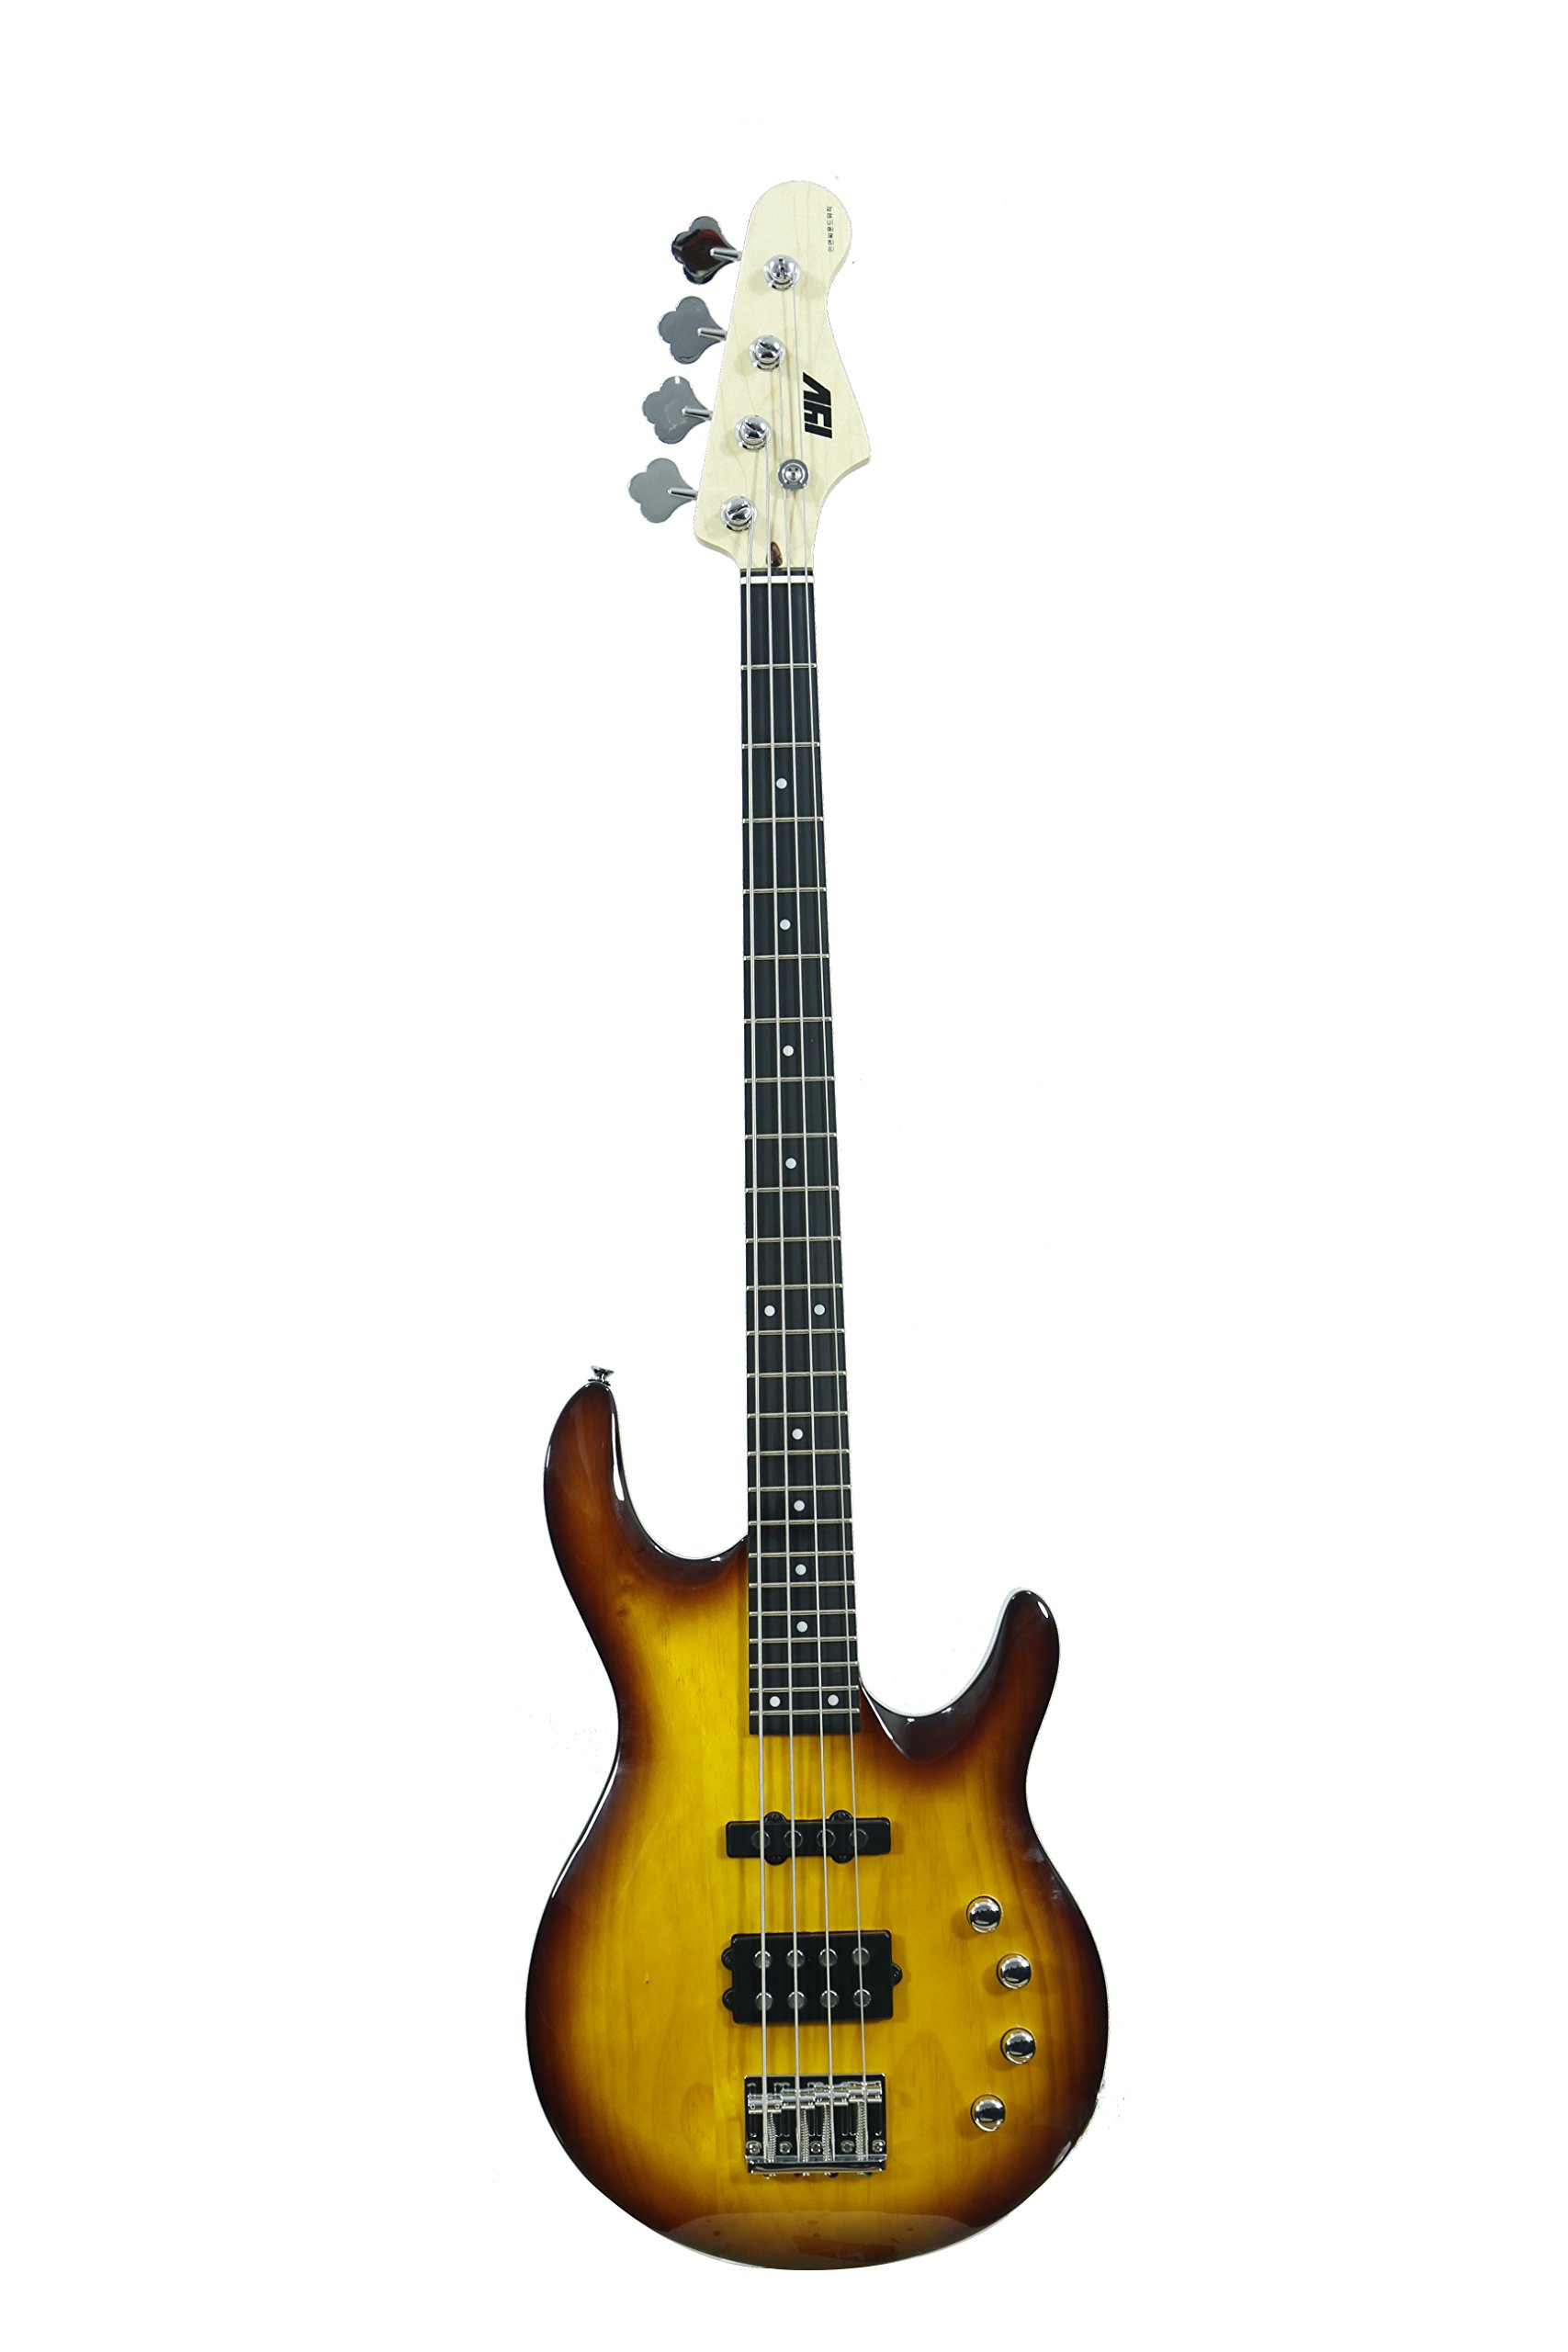 Cheap ivy IMM-200 BRB Bass Solid-Body Electric Guitar Brown Burst Black Friday & Cyber Monday 2019